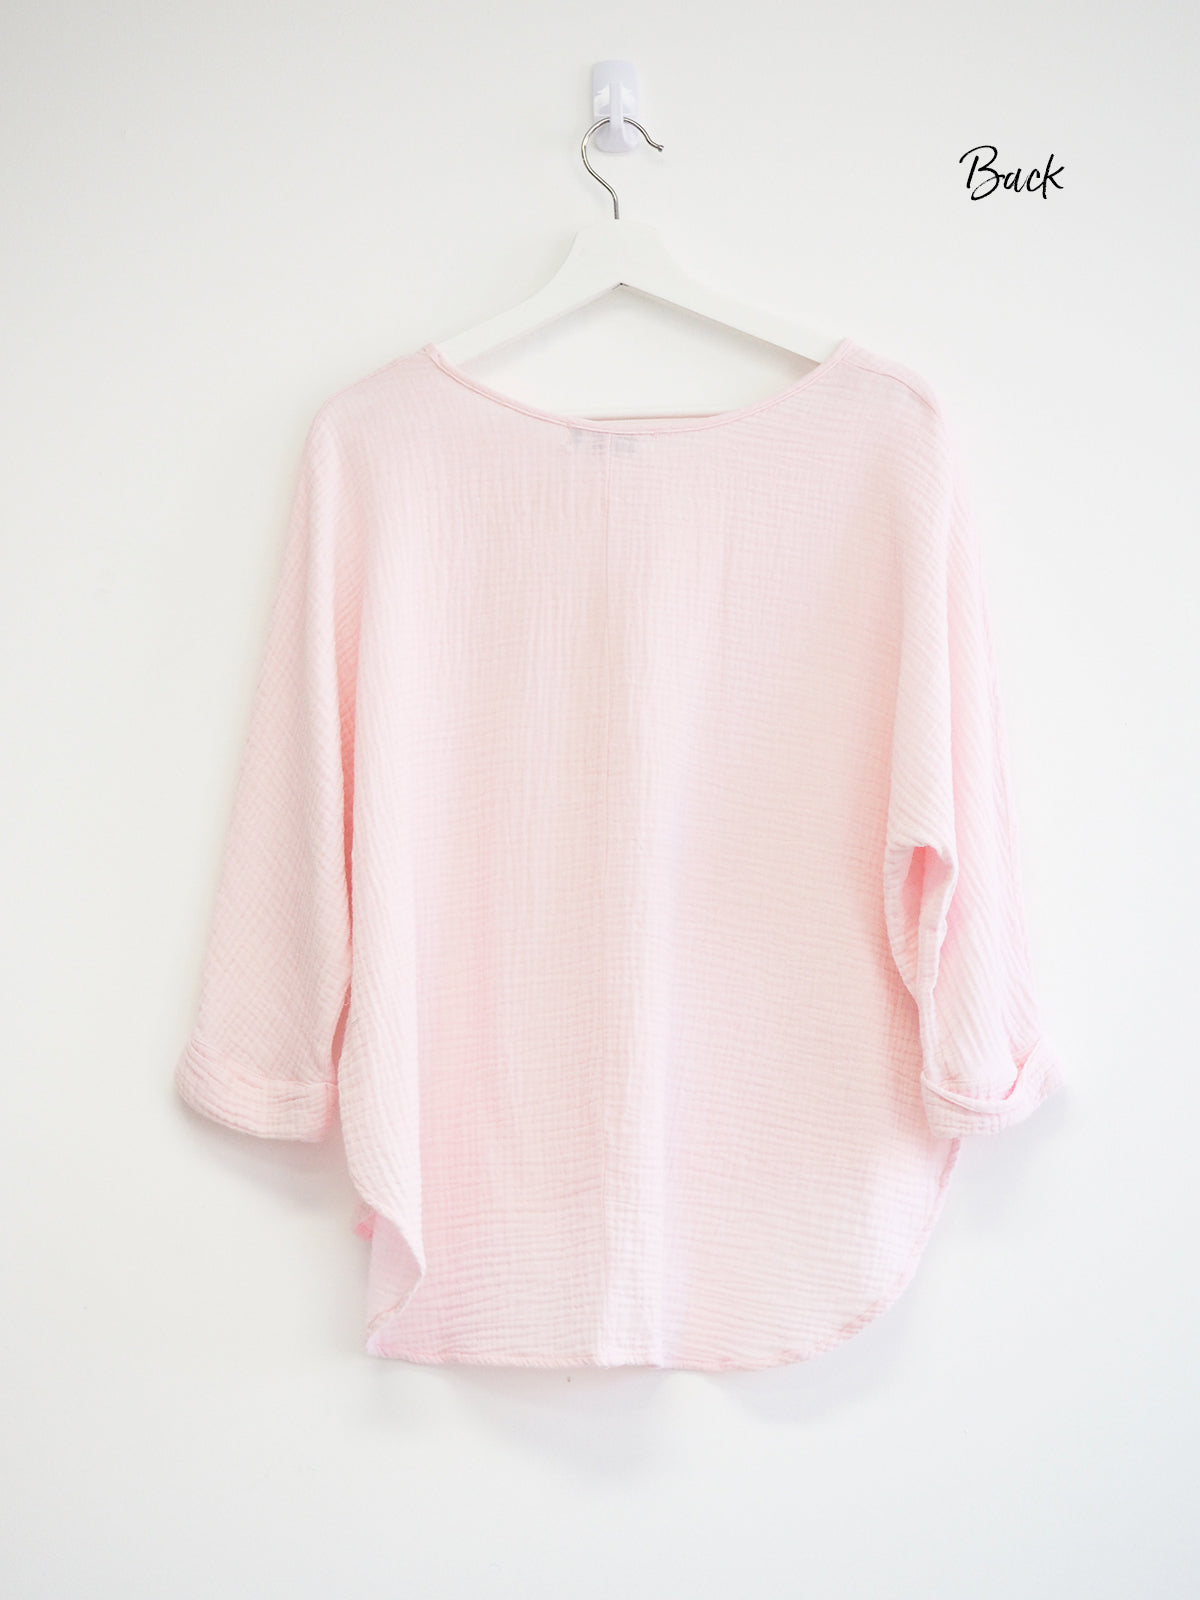 SOMETHING ABOUT YOU PINK TOP